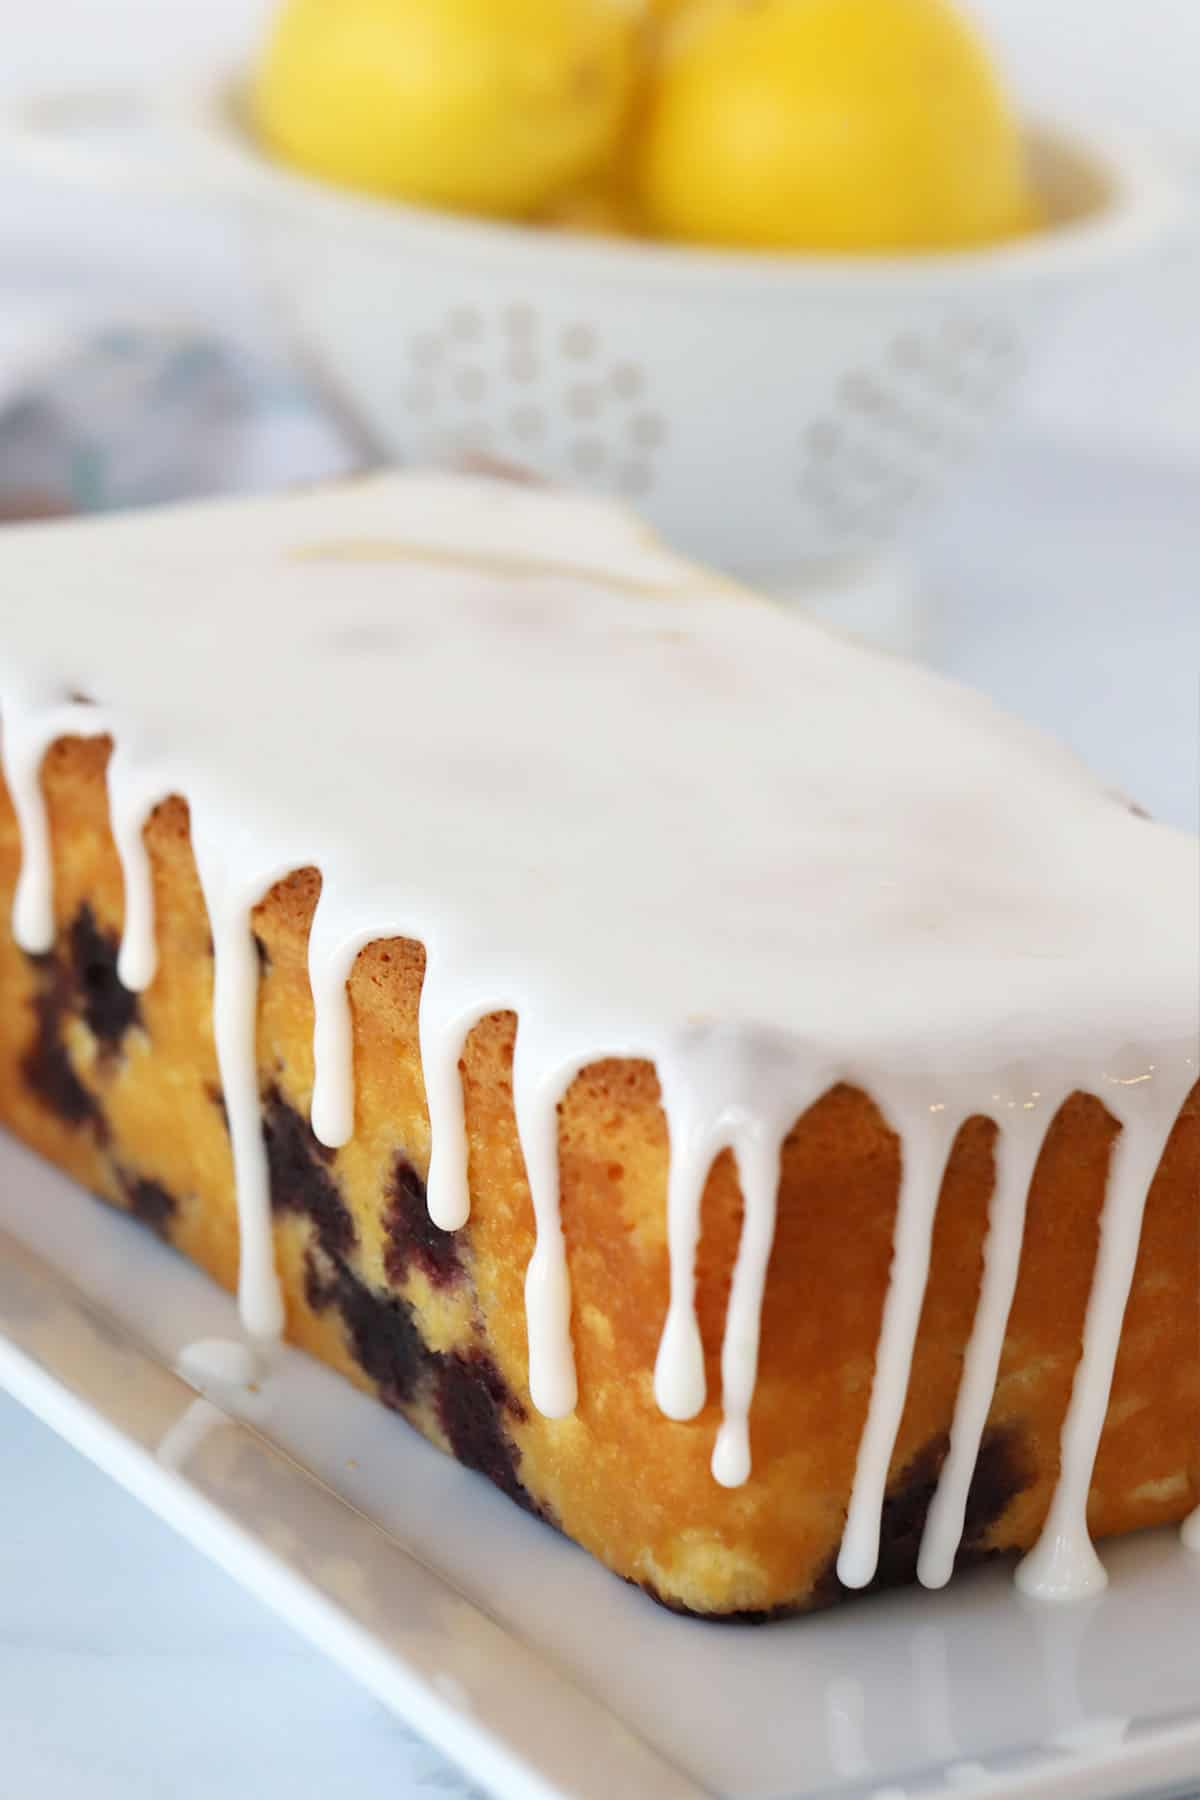 A full loaf of lemon blueberry bread on a white plate dripping with lemon glaze.